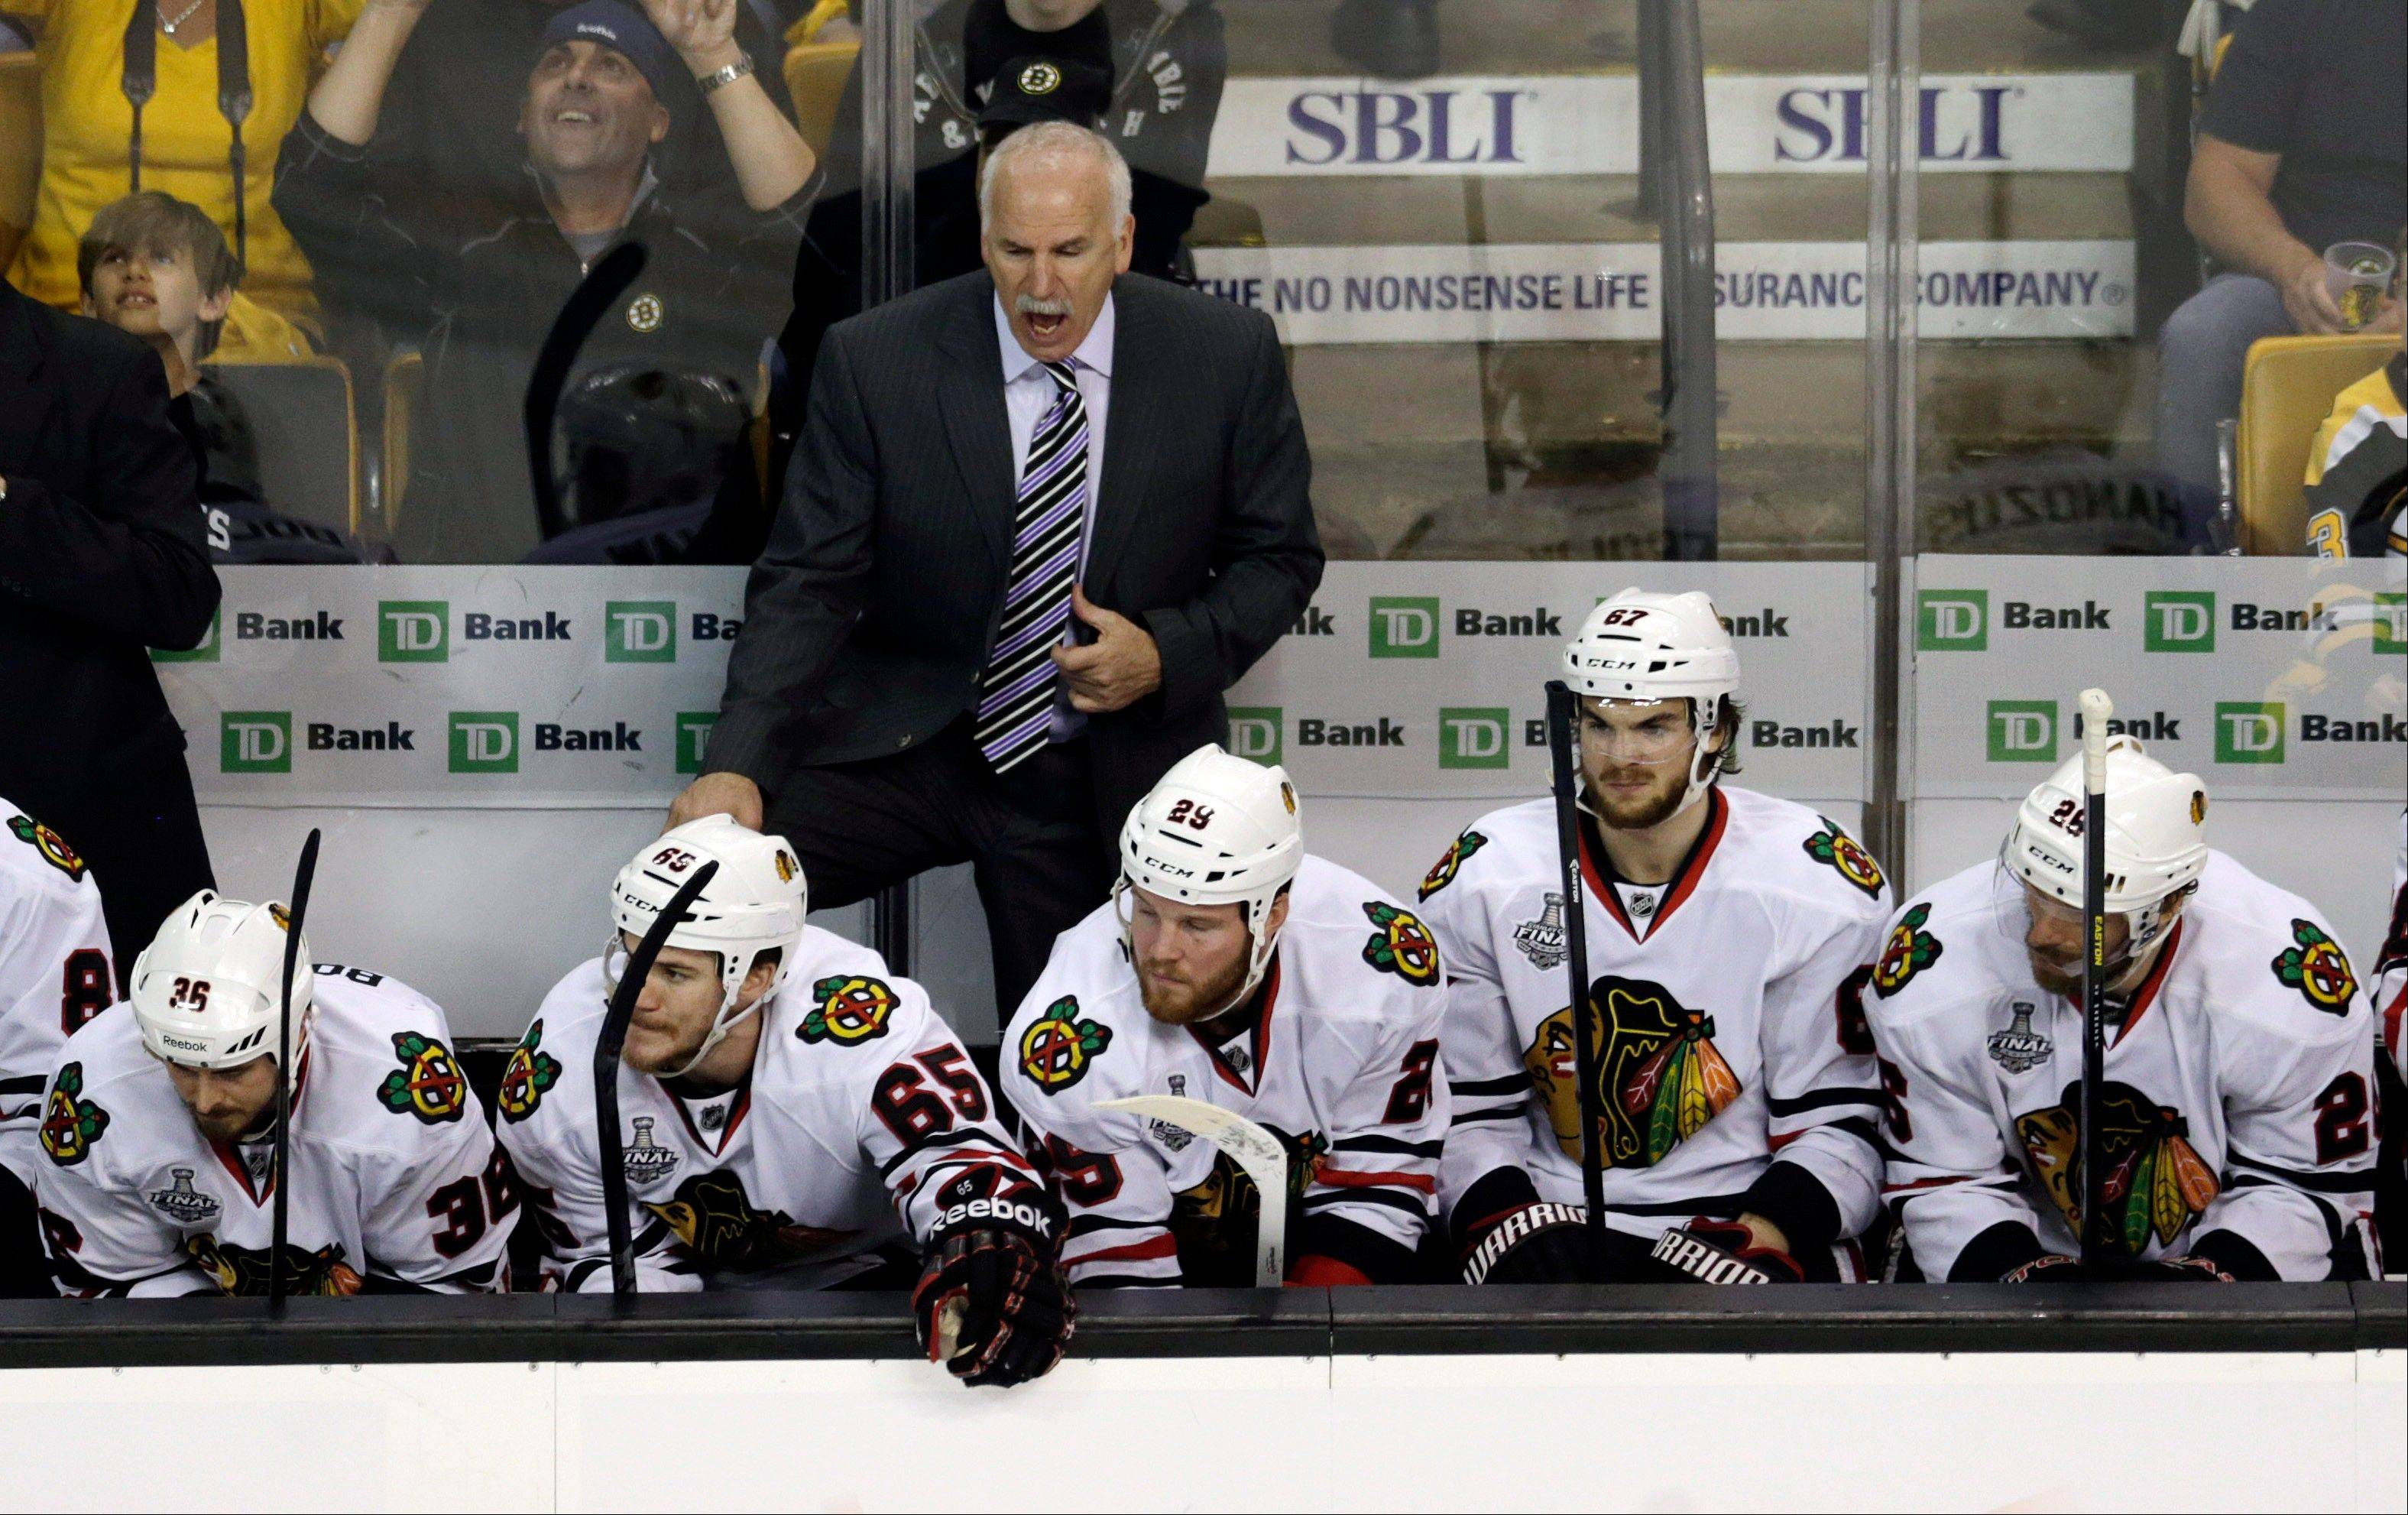 Blackhawks head coach Joel Quenneville made a lot of moves in Game 3, but he couldn't always find the right answer to get past Boston's defense.